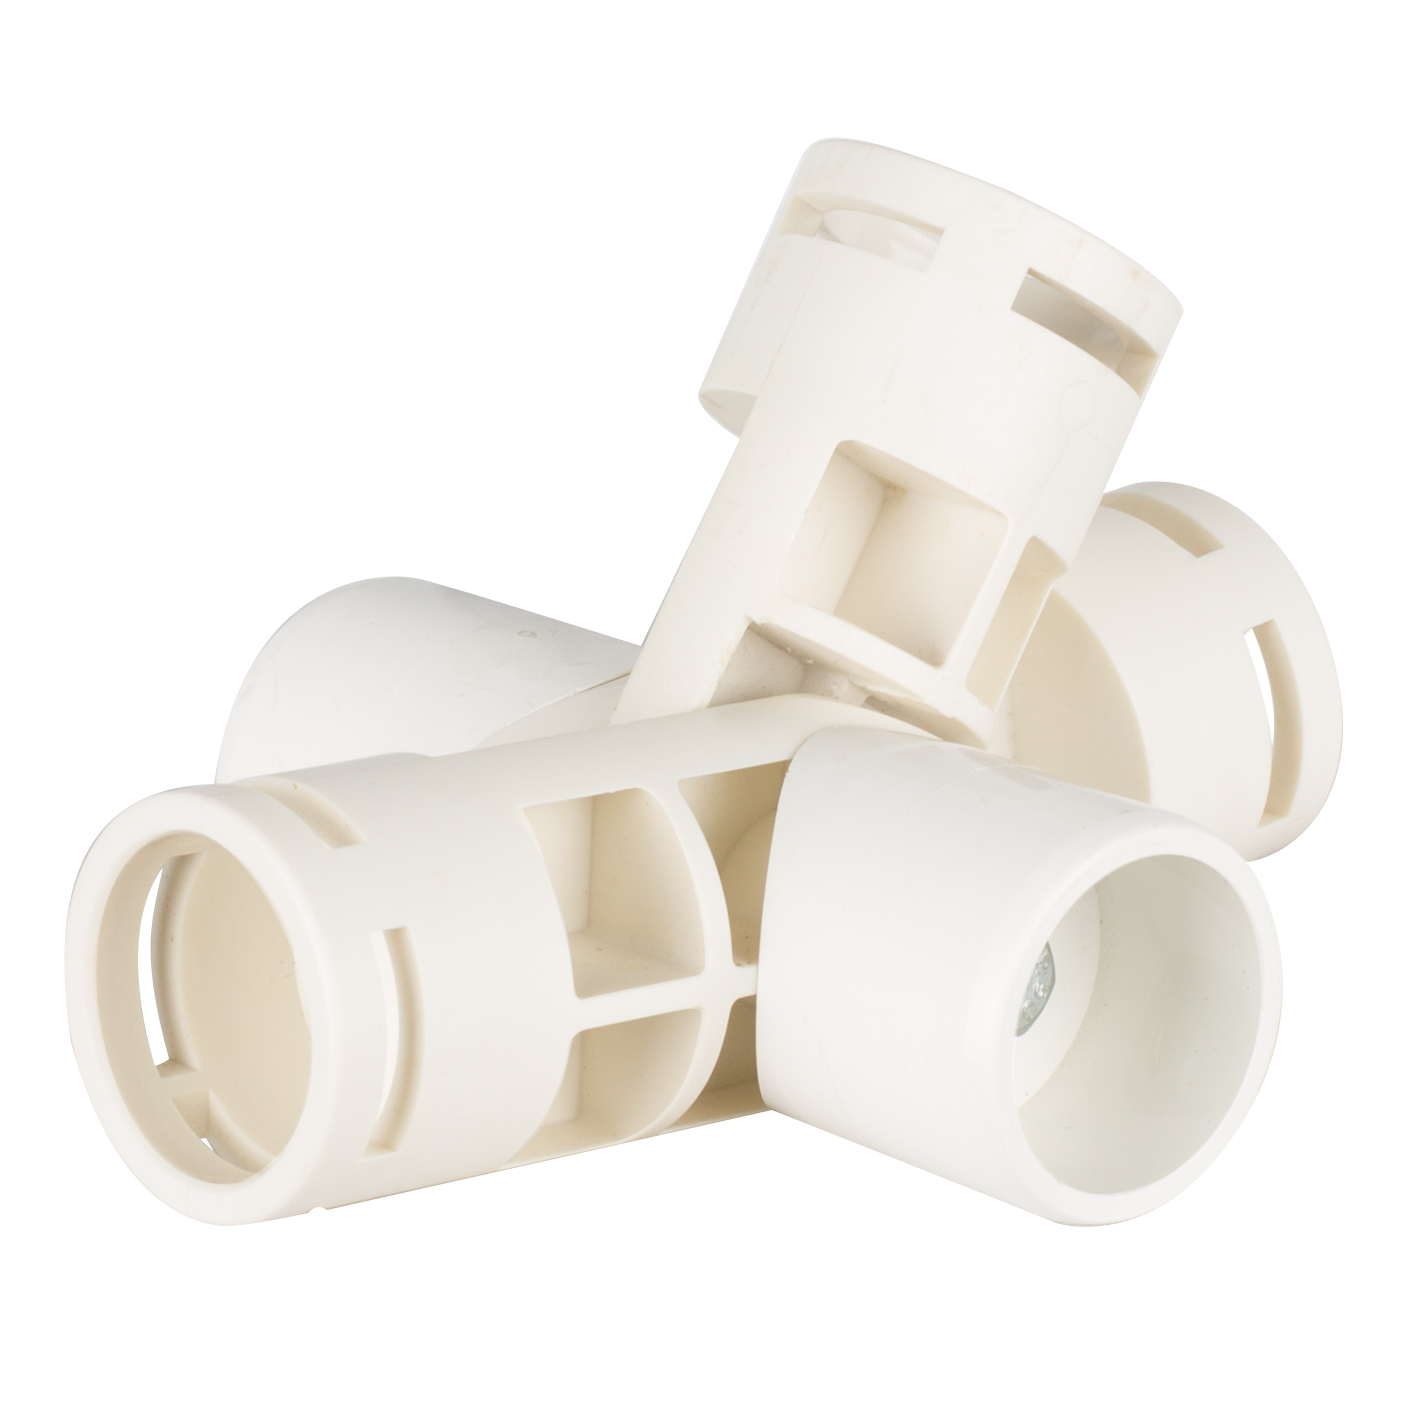 Pvc Joints White Pvc Fittings Creative Shelters